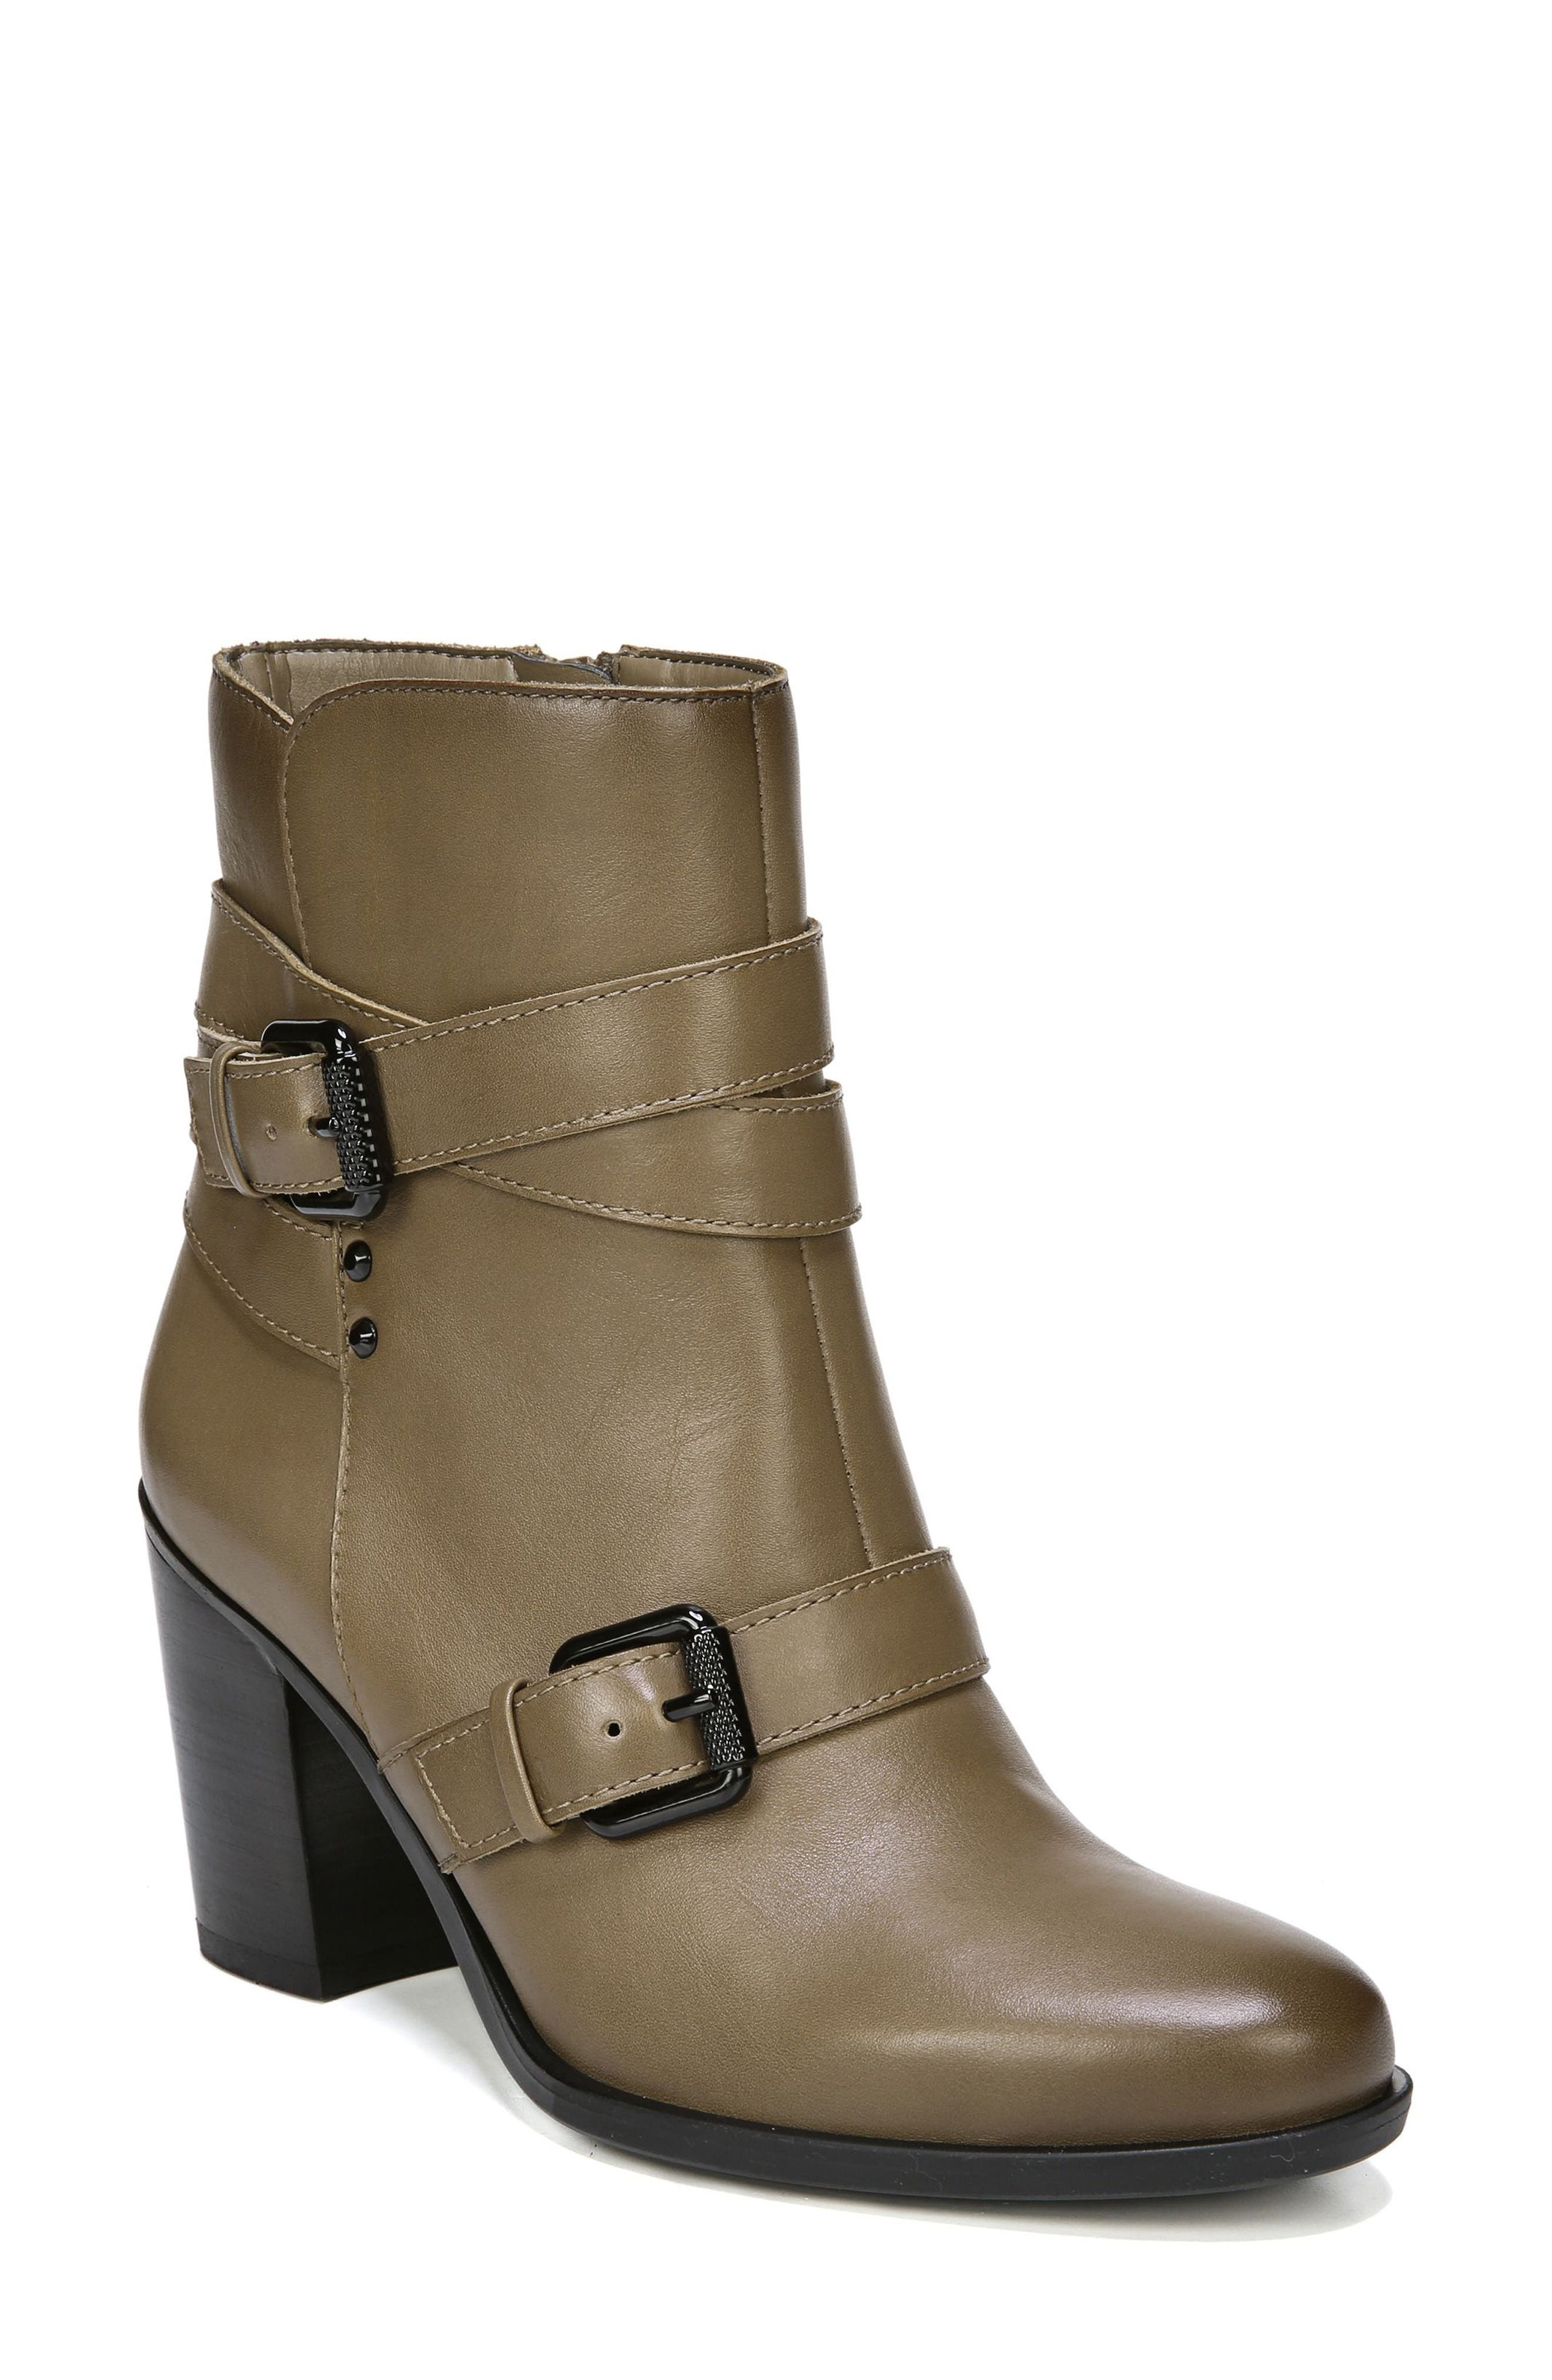 Alternate Image 1 Selected - Naturalizer Karlie Buckle Bootie (Women)